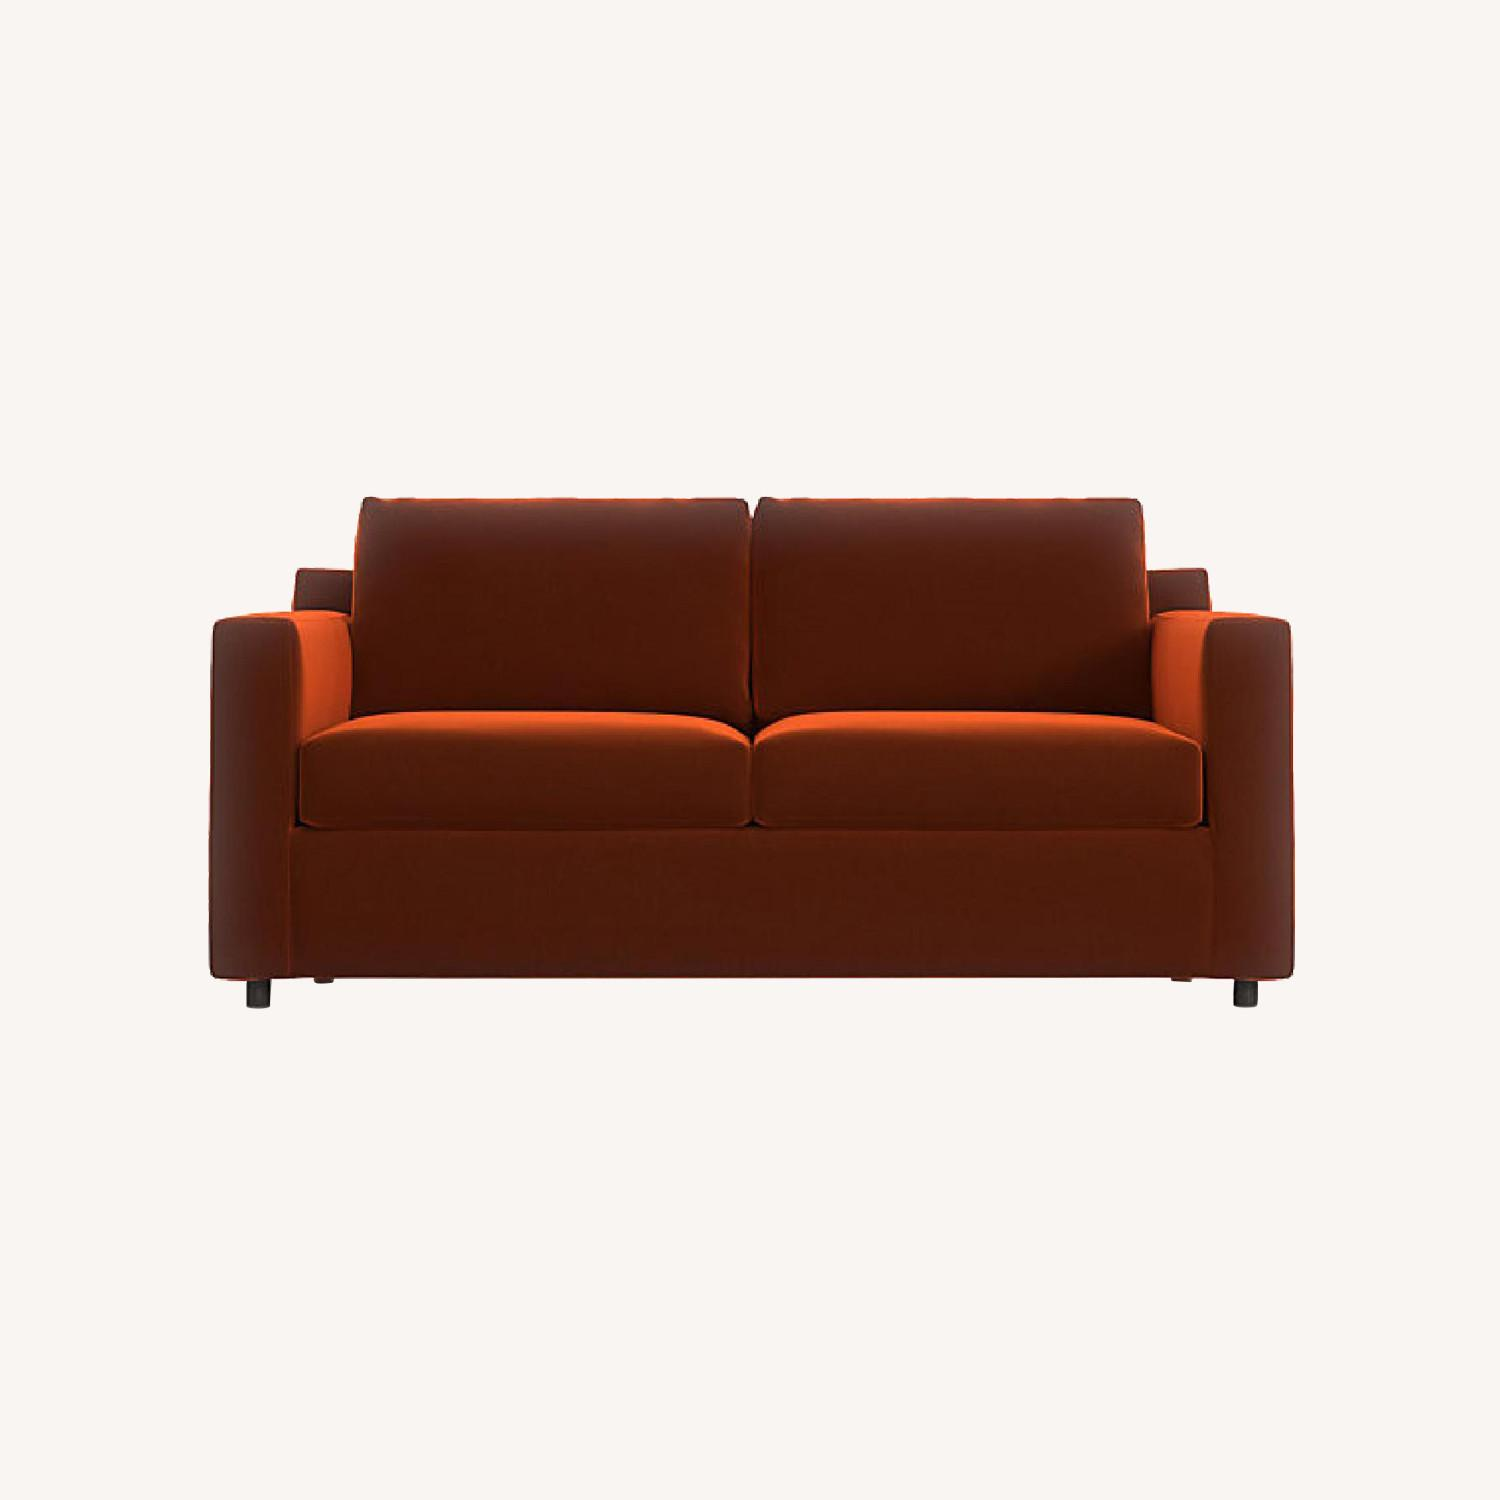 Crate & Barrel Davis Sofa - image-6